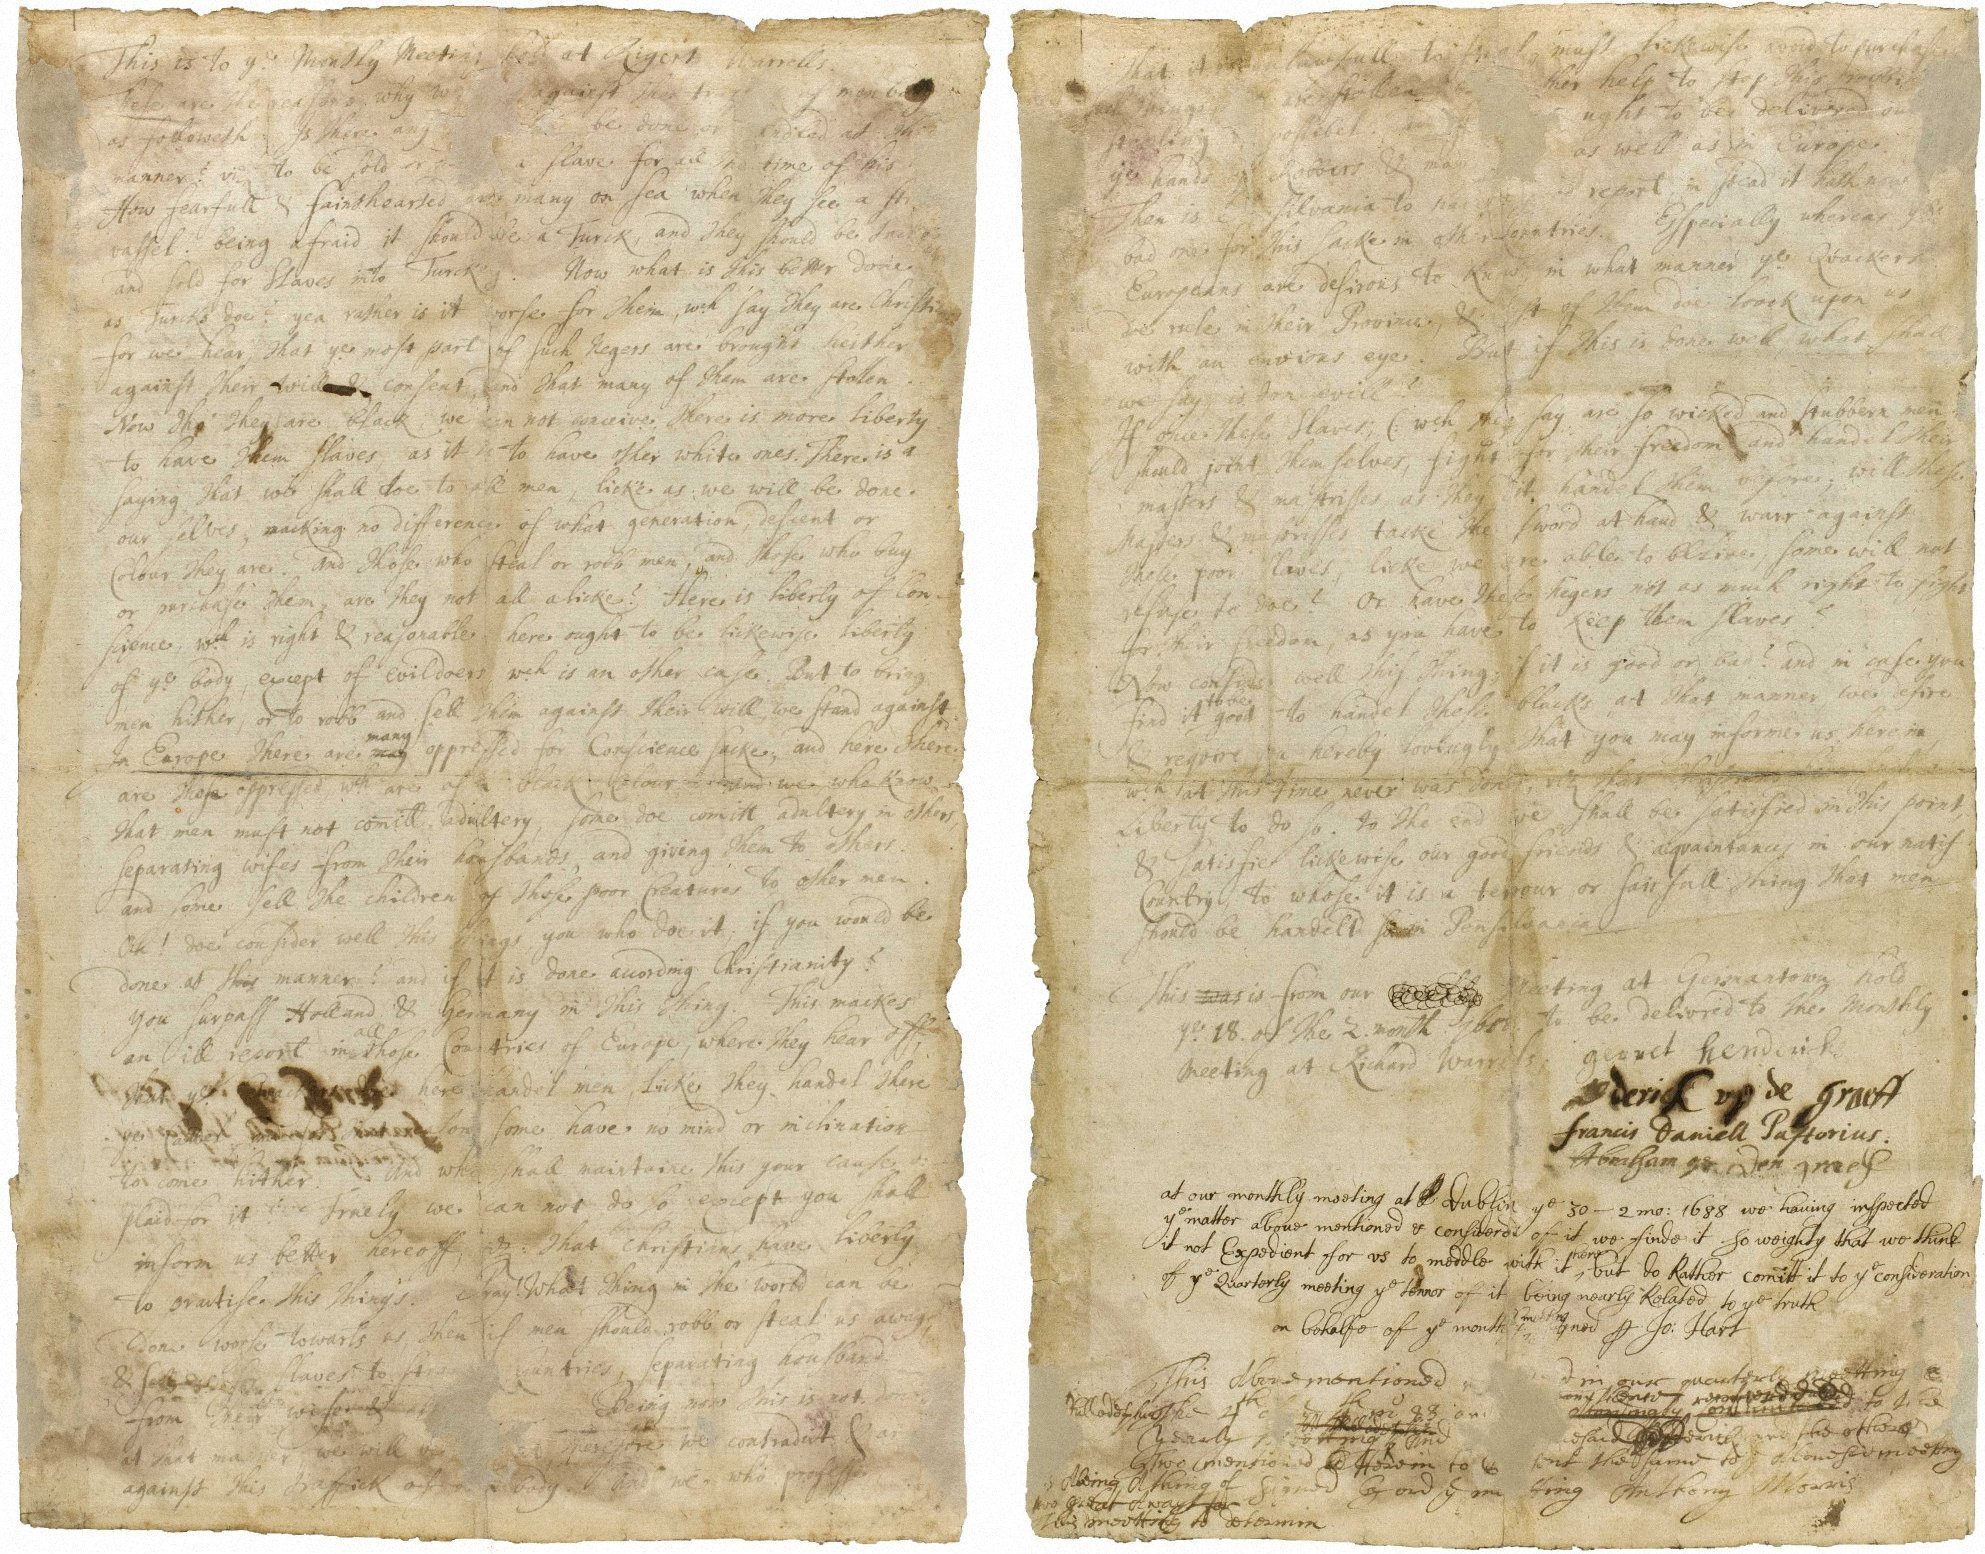 The 1688 Germantown Quaker petition against slavery